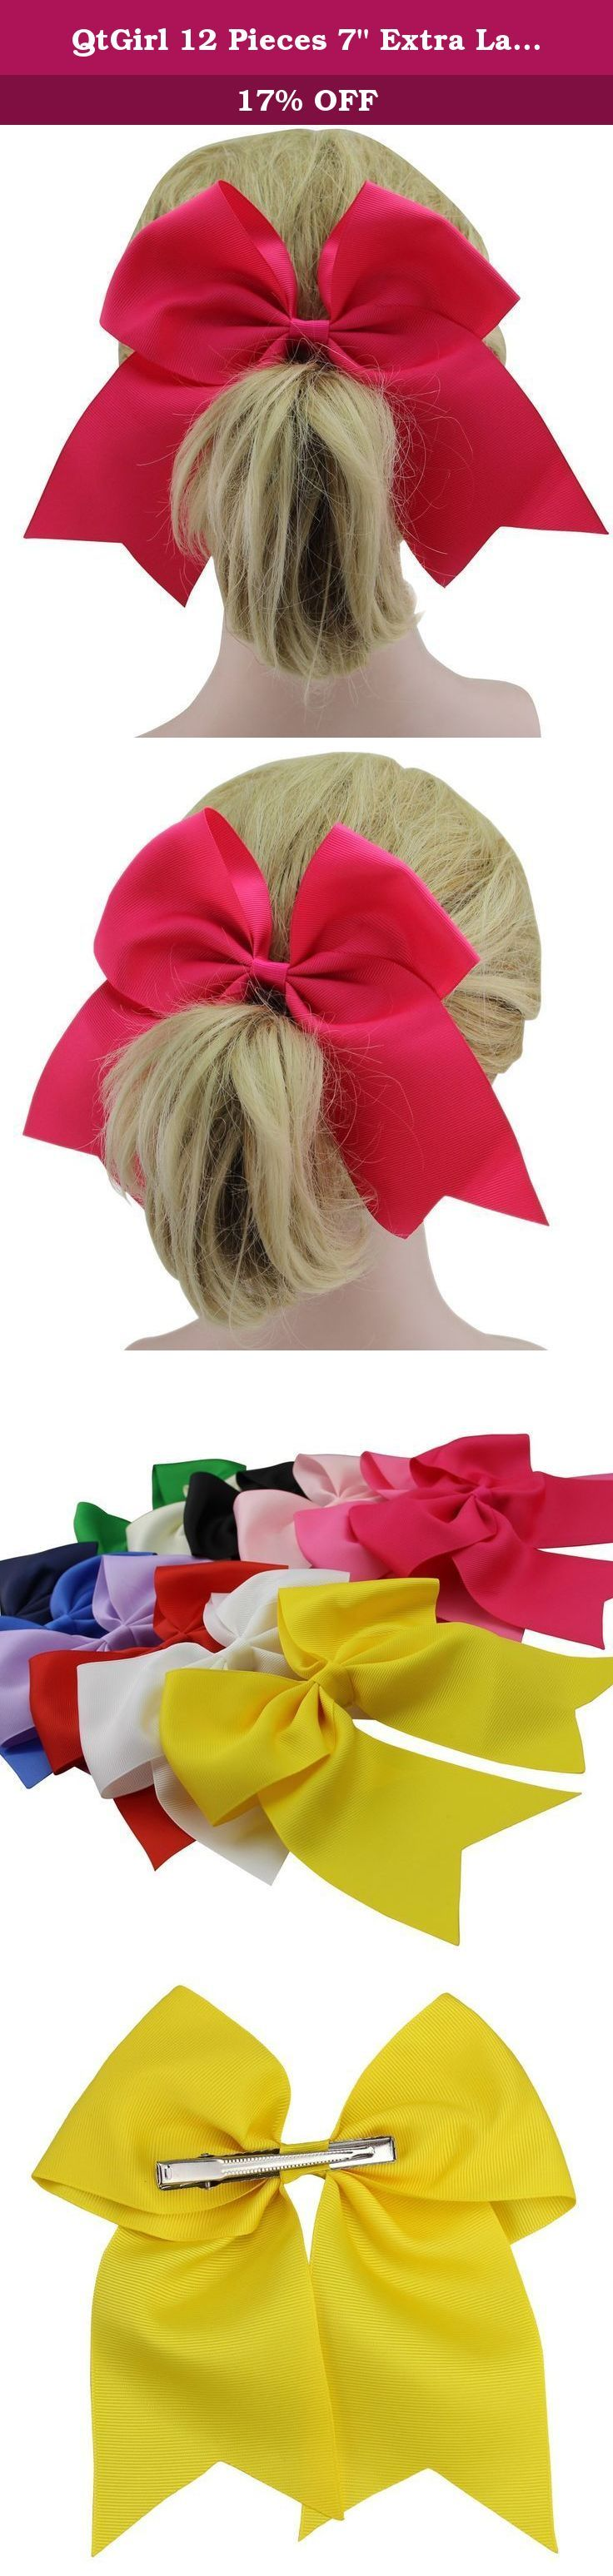 """QtGirl 12 Pieces 7"""" Extra Large Grosgrain Cheerleader Hair Bow with Clip. Why choose bows from Fashionfamily --We started to make bows 5 years ago, with a group of young people who are attracted by the cute and fancy bows, since then we've been striving to provide nice designed and high quality bows for our customers. Till now, we are proud to tell you that: * All bows are handmade by experienced workers, and with even and chic appearances. * The bows from Fashionfamily are made of well..."""